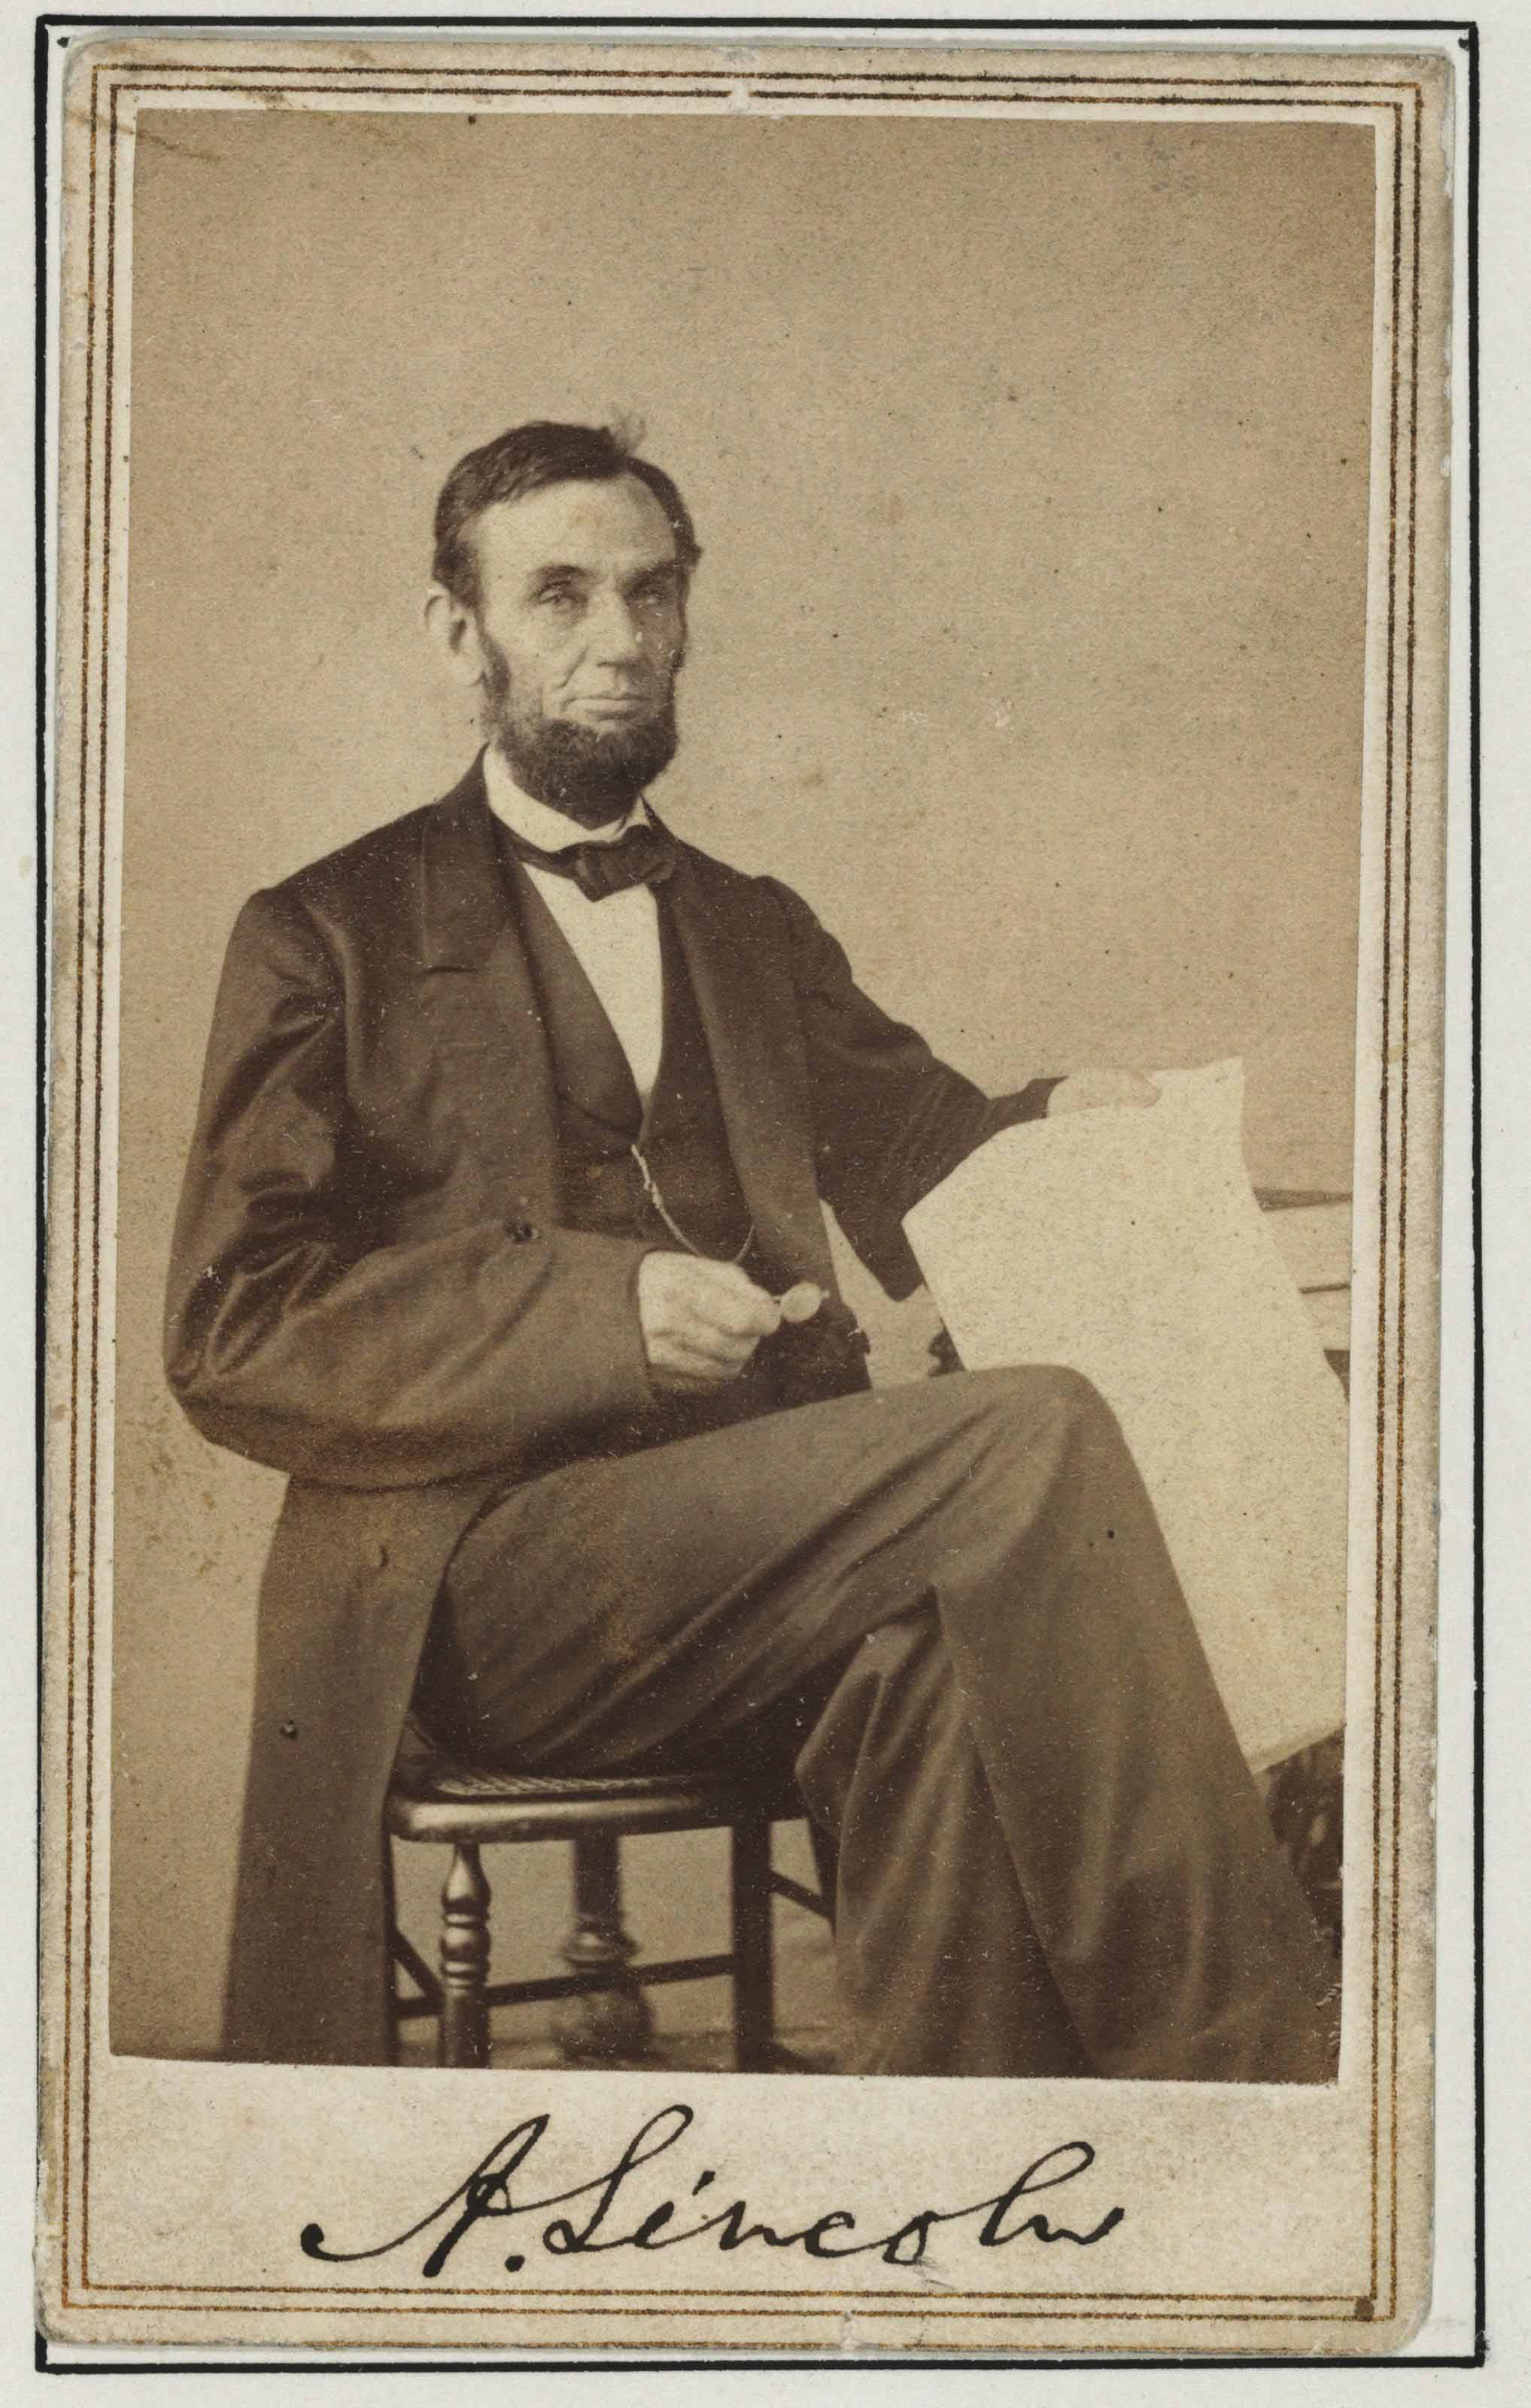 GARDNER Alexander Photographer Carte De Visite Photograph Signed A Lincoln As President Backstamp Of GardnerWashington